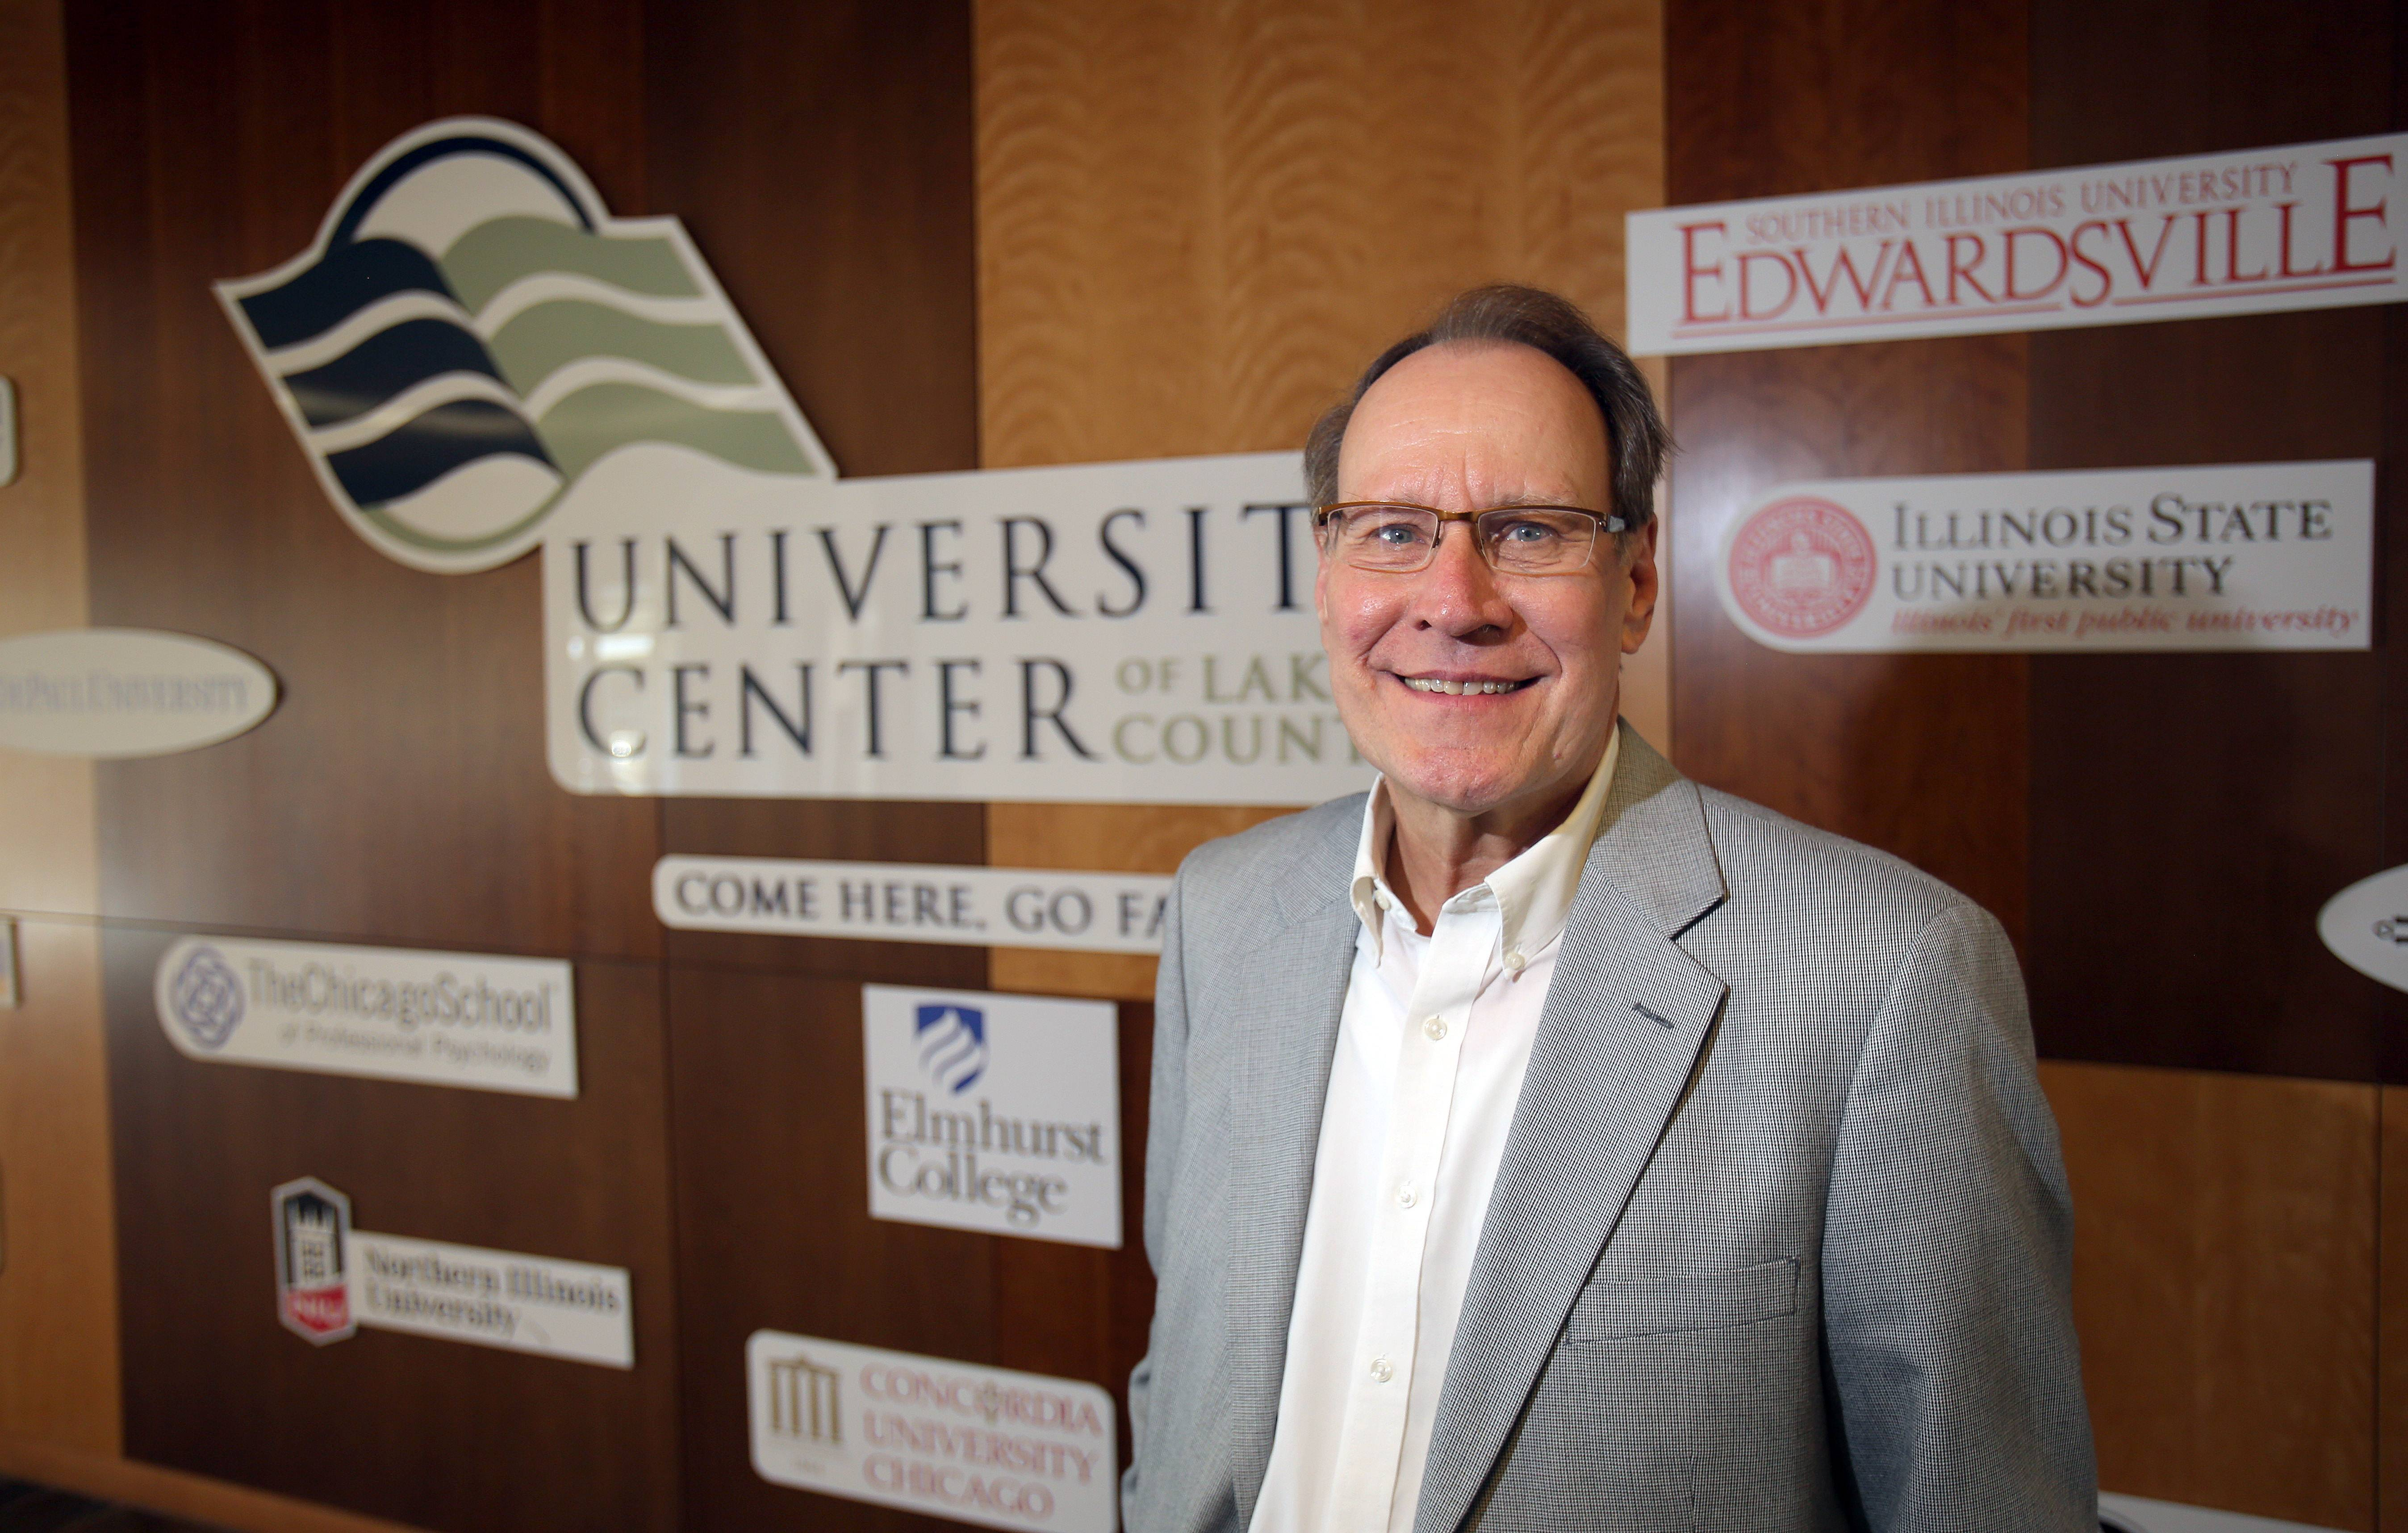 Gary Grace is the executive director and dean of The University Center of Lake County in Grayslake. He's retiring in April.